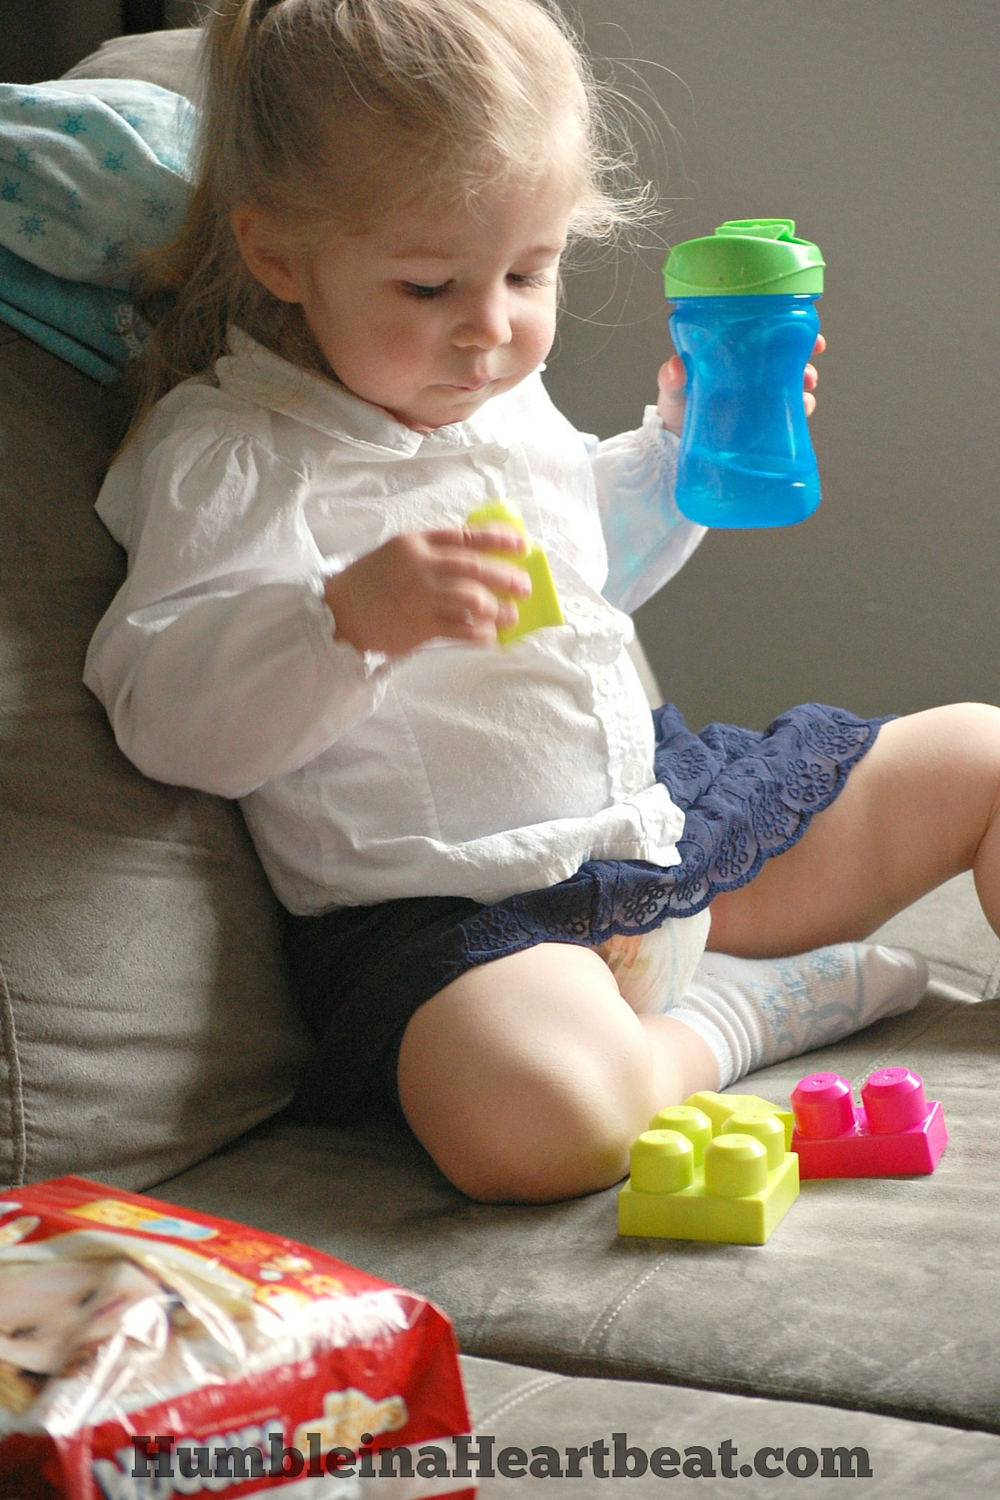 Diaper rash is no fun to deal with, for both mom and baby! Here are 5 effective ways to minimize or possibly even prevent diaper rash from flaring up. Your baby or toddler deserves to be healthy and happy! #KrogerLittleSnugglers #Pmedia #ad